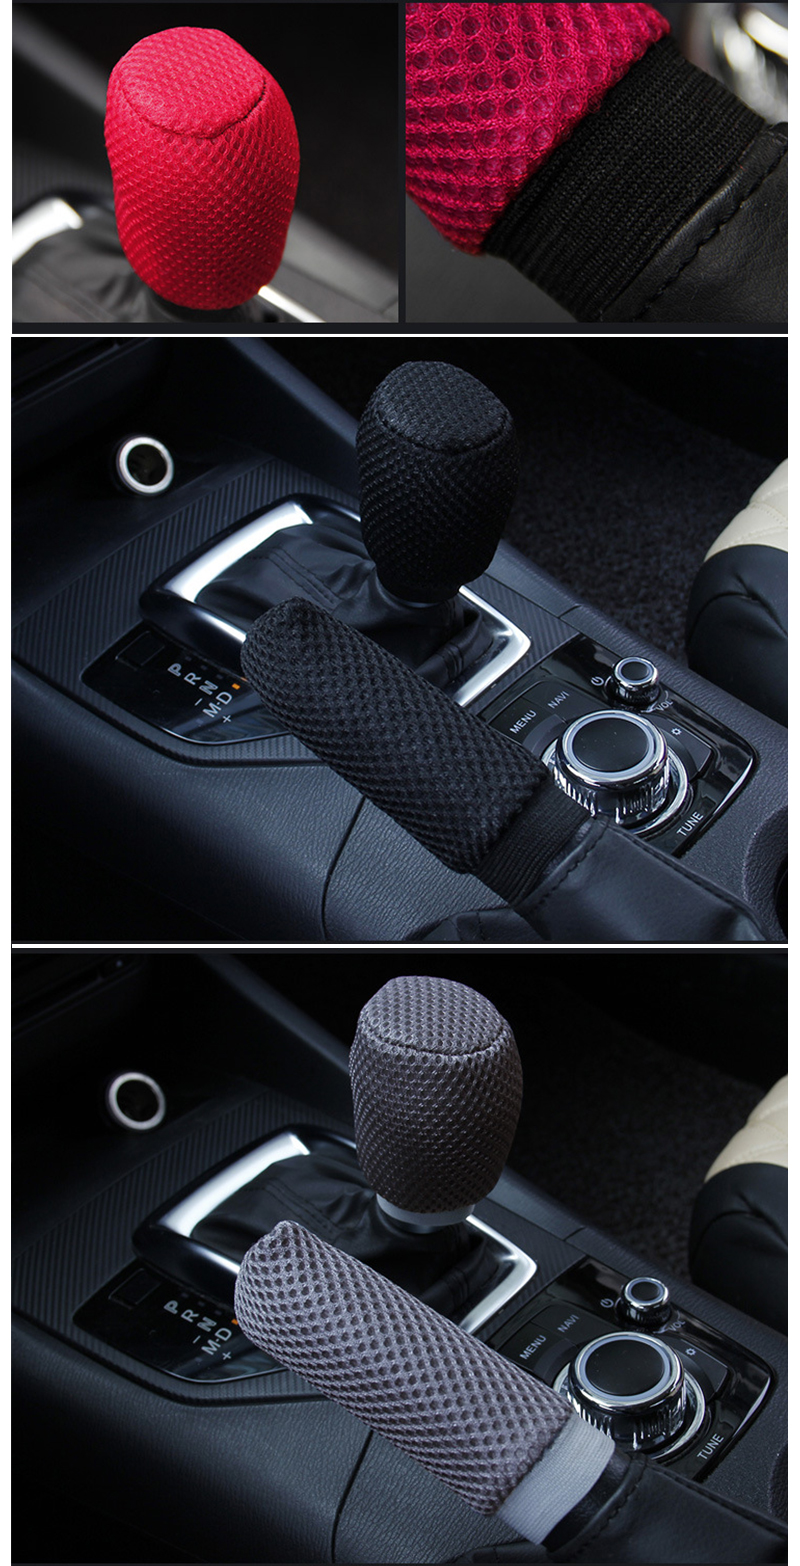 Back To Search Resultsautomobiles & Motorcycles Handbrake Grips Car Handbrake Covers Gear Shift Collars Gear Shift Knob Cover Protect 5 Speed Auto Anti Slip Handle Sleeve Universal Accessories Matching In Colour